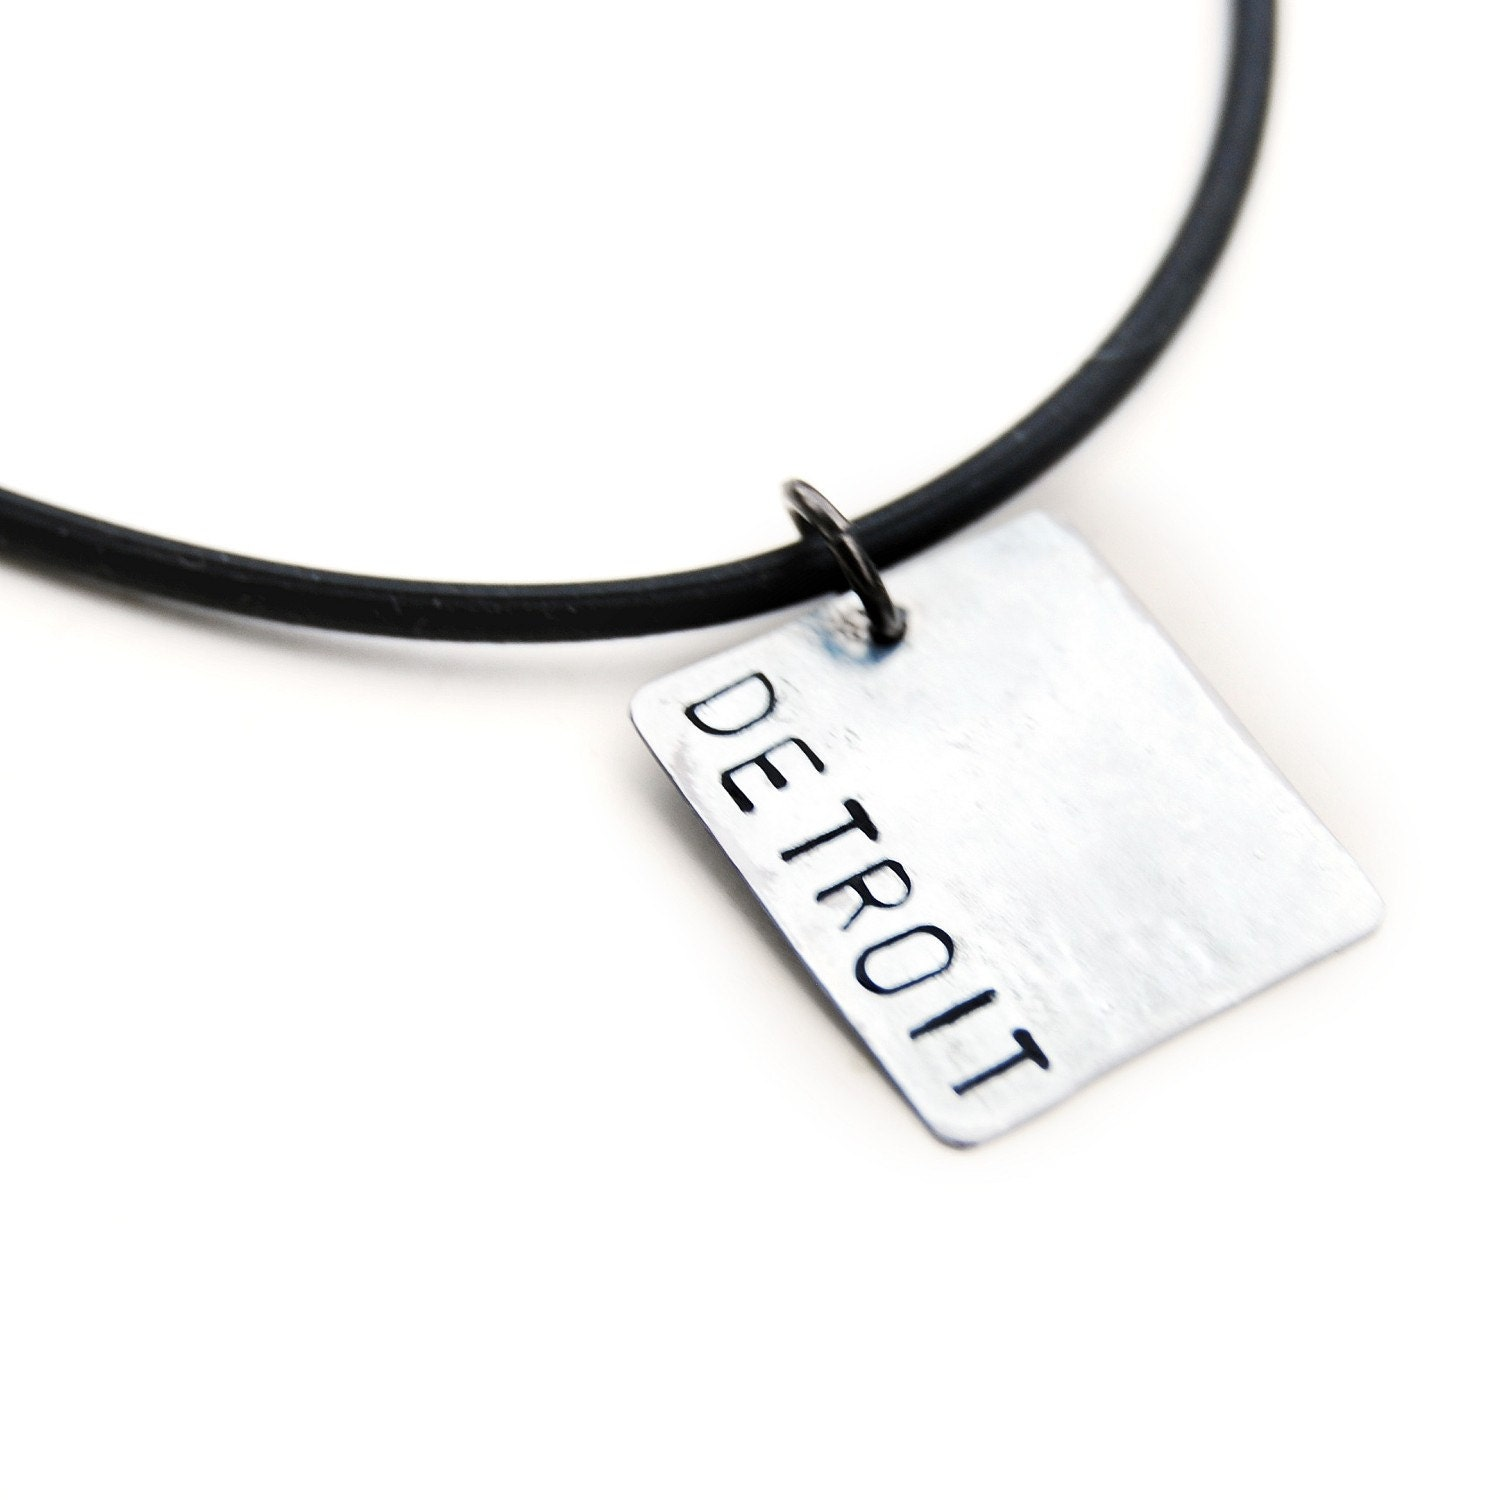 Detroit necklace lilacpop studio fashion photography art for Just my style personalized jewelry studio